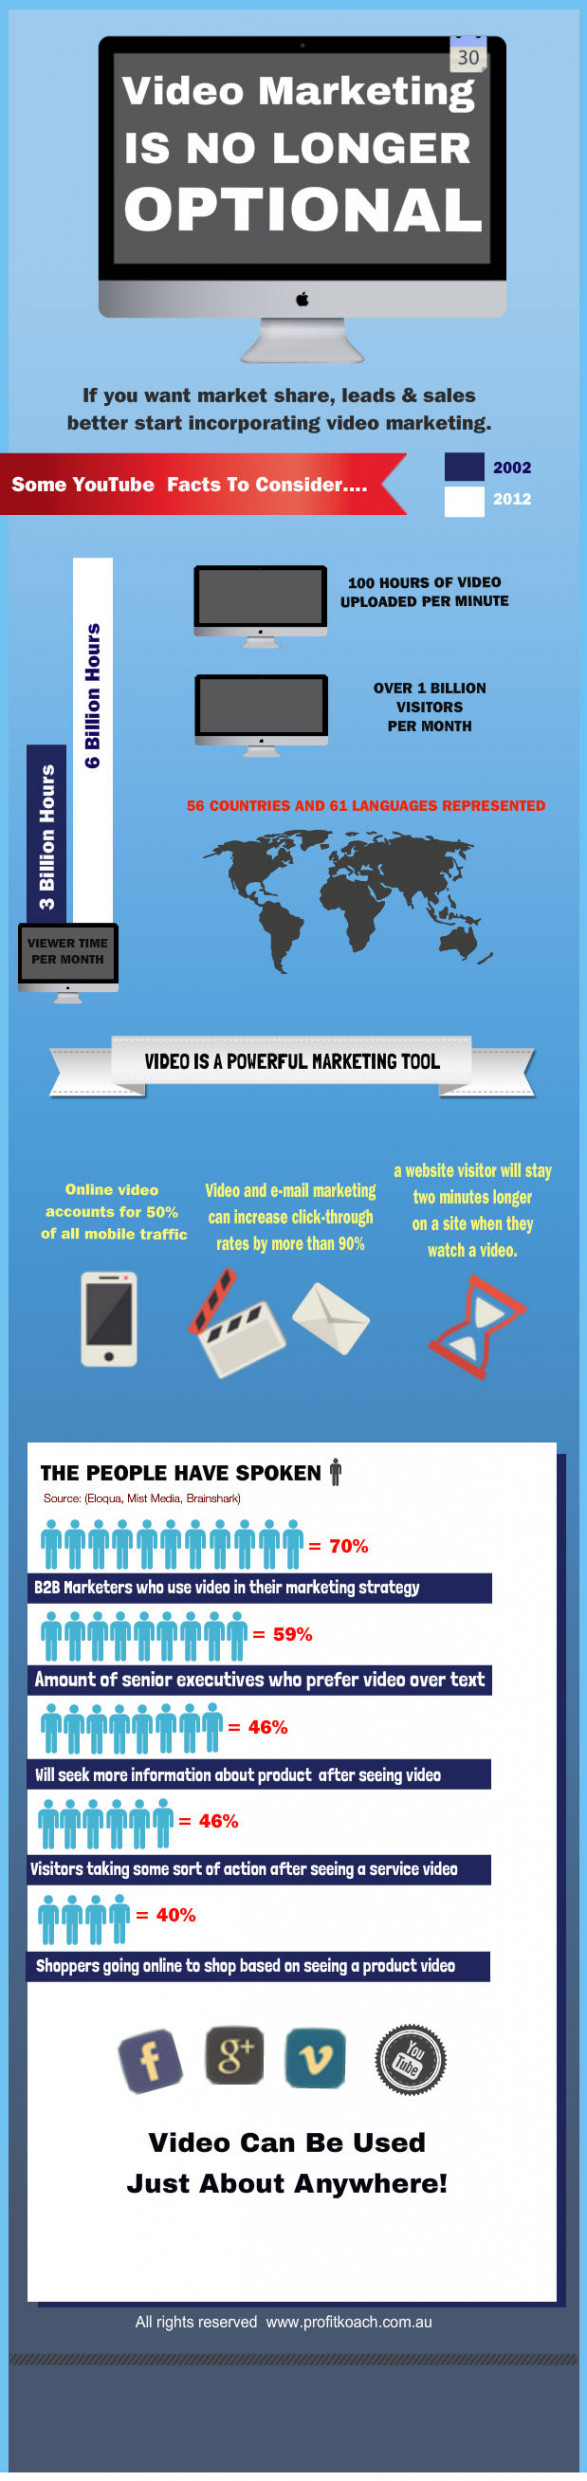 Video Marketin - Stand Out Or Stand Down